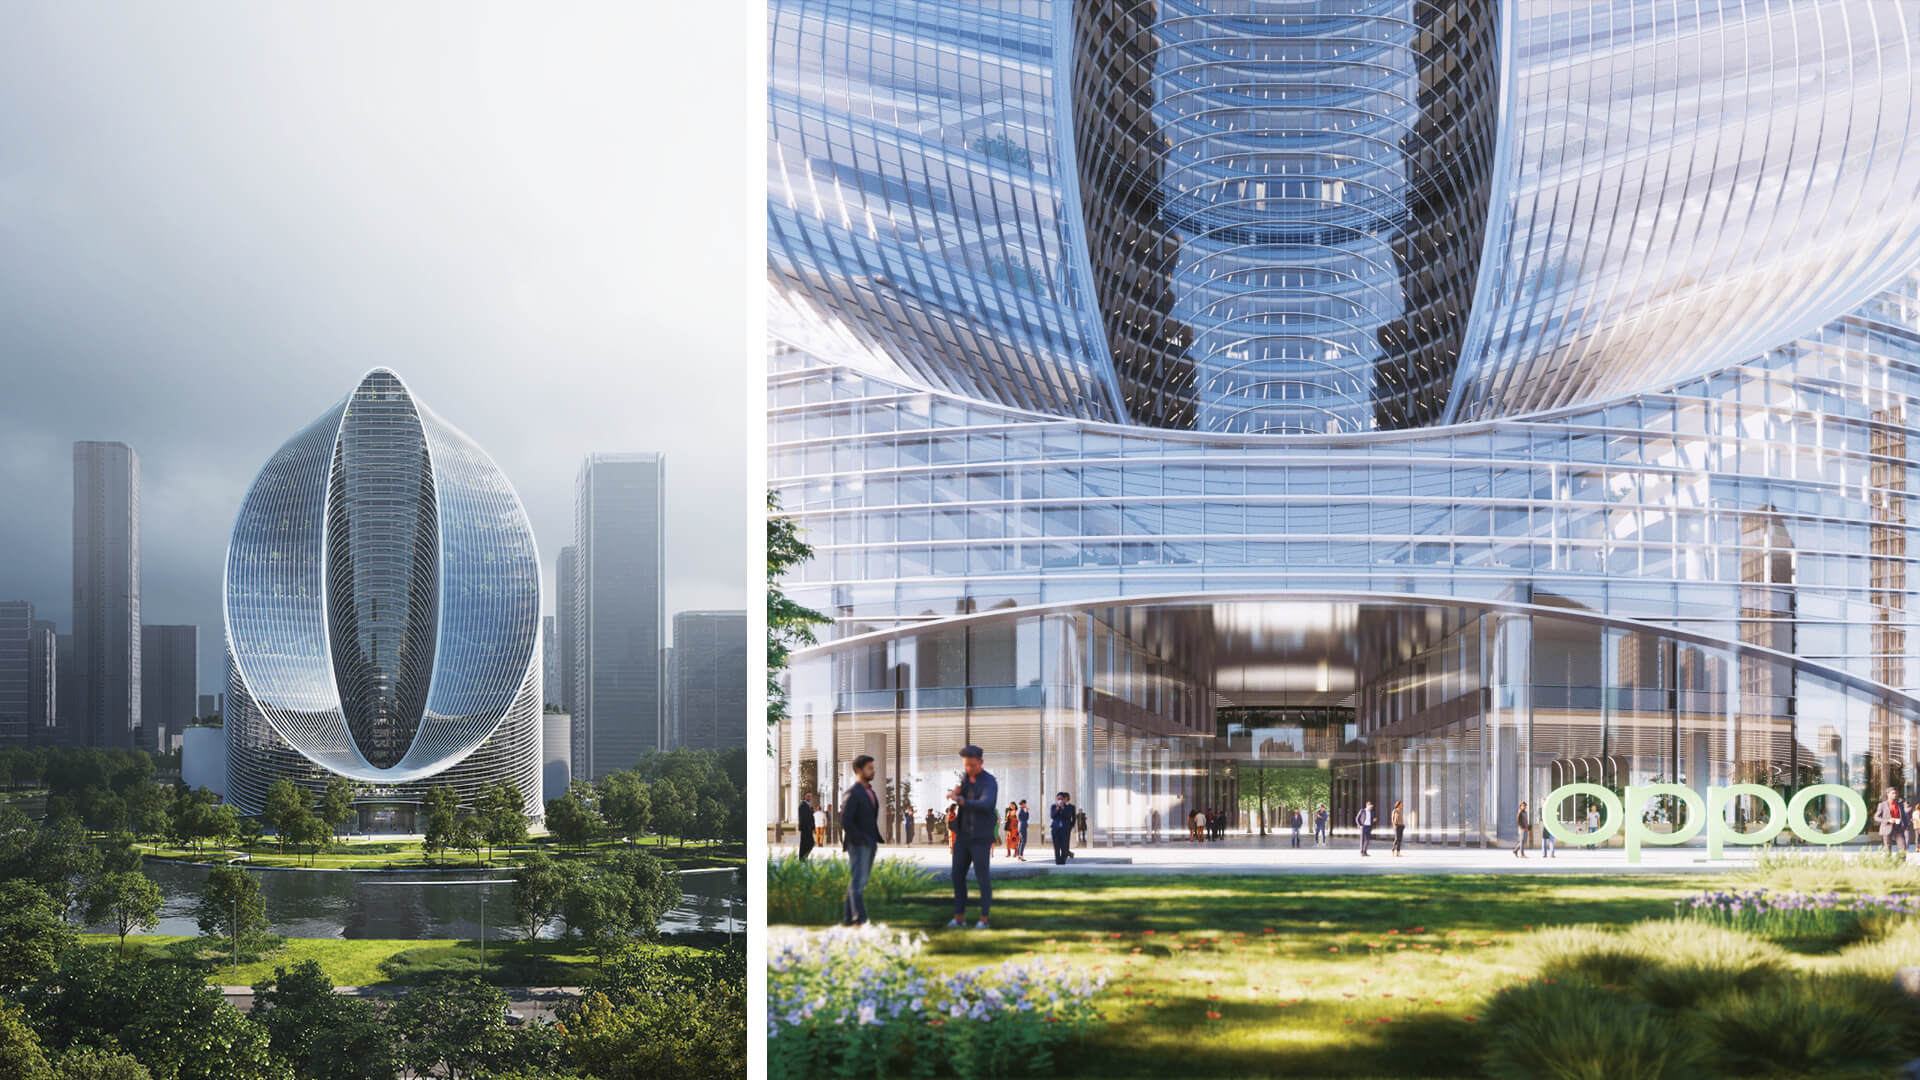 BIG has designed a fluid, O-shaped tower for Oppo's new R&D Headquarters in Hangzhou, China | Oppo R&D Headquarters by Bjarke Ingels Group | STIRworld